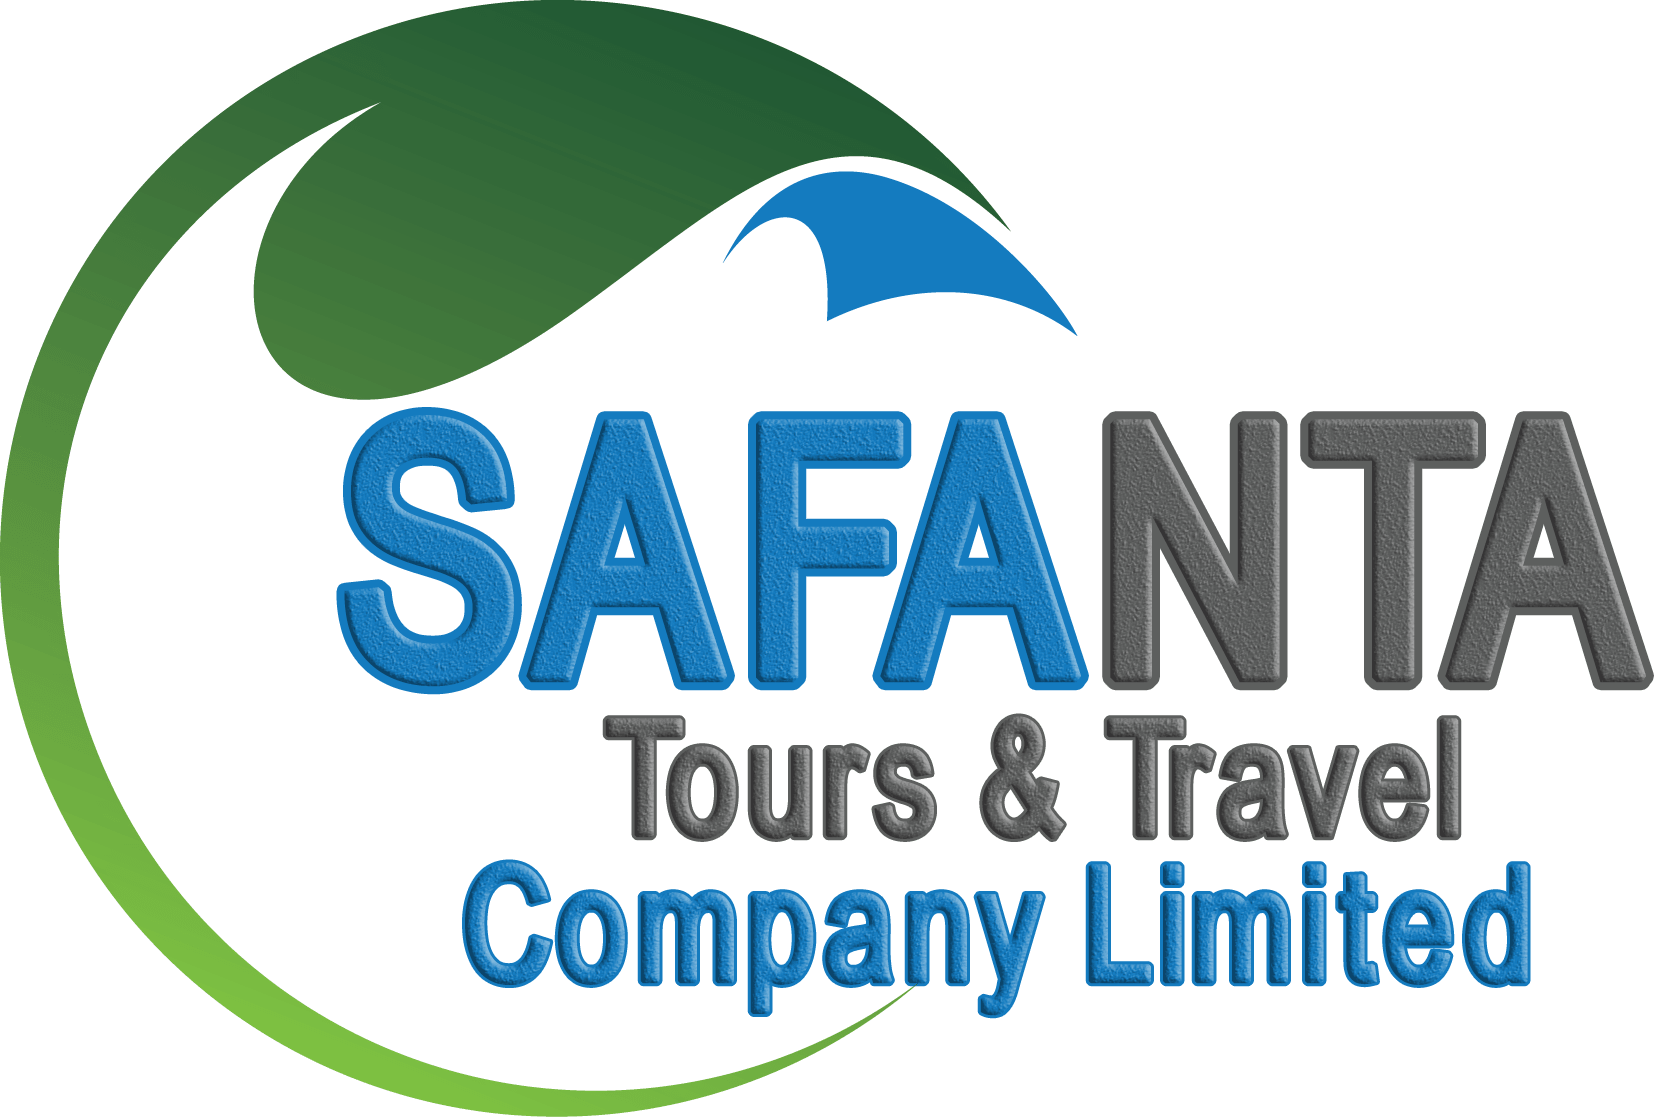 SAFANTA TOURS & TRAVEL LIMITED